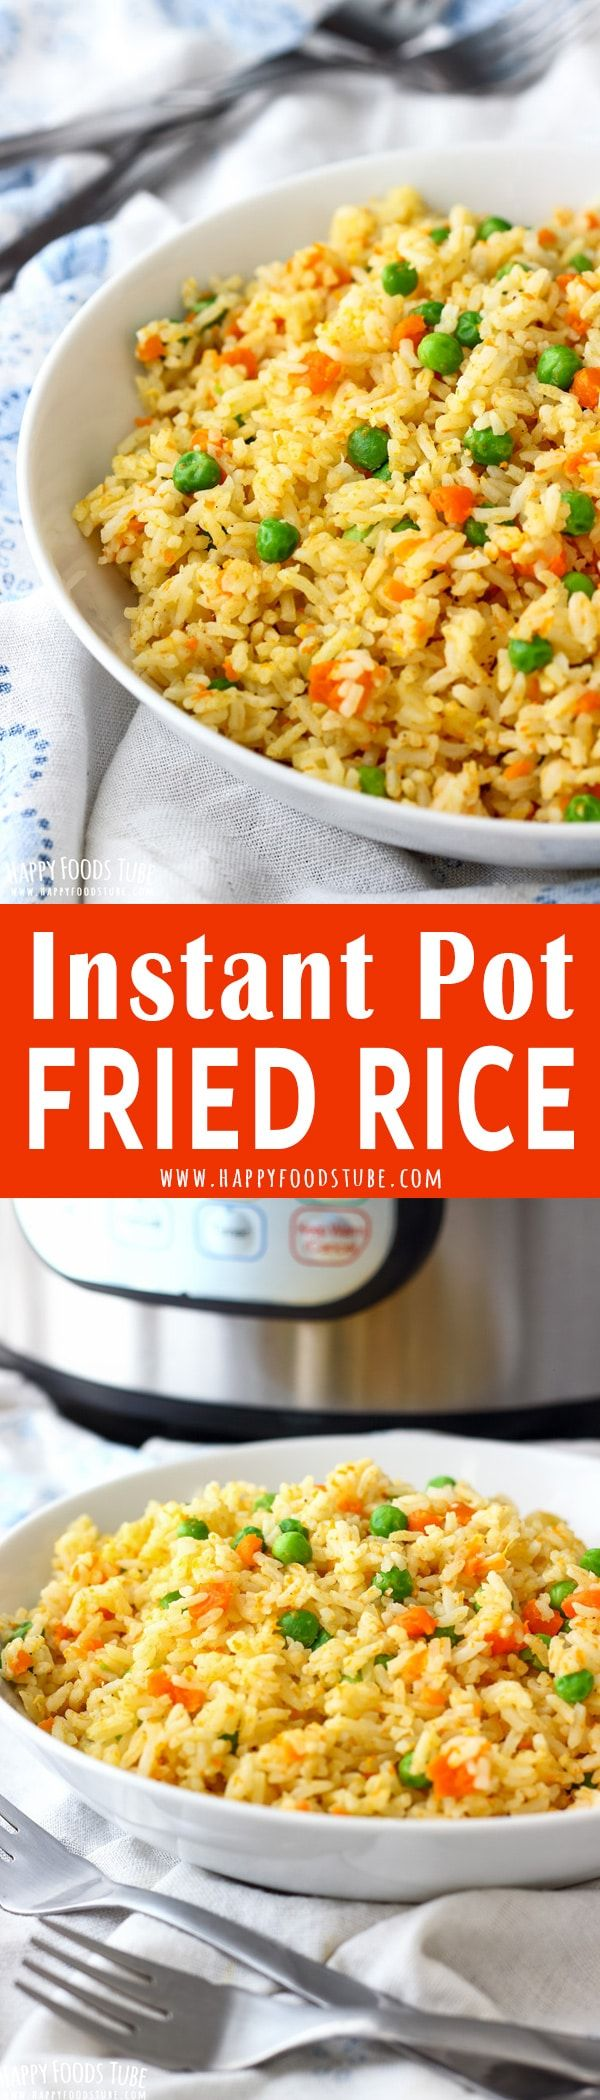 This Instant Pot fried rice is quick and easy pressure cooker recipe. Simple ingredients, easy preparation and great flavors. Instant Pot vegetarian fried rice. Gluten free. #instantpot #friedrice #pressurecooker #vegetarian #glutenfree